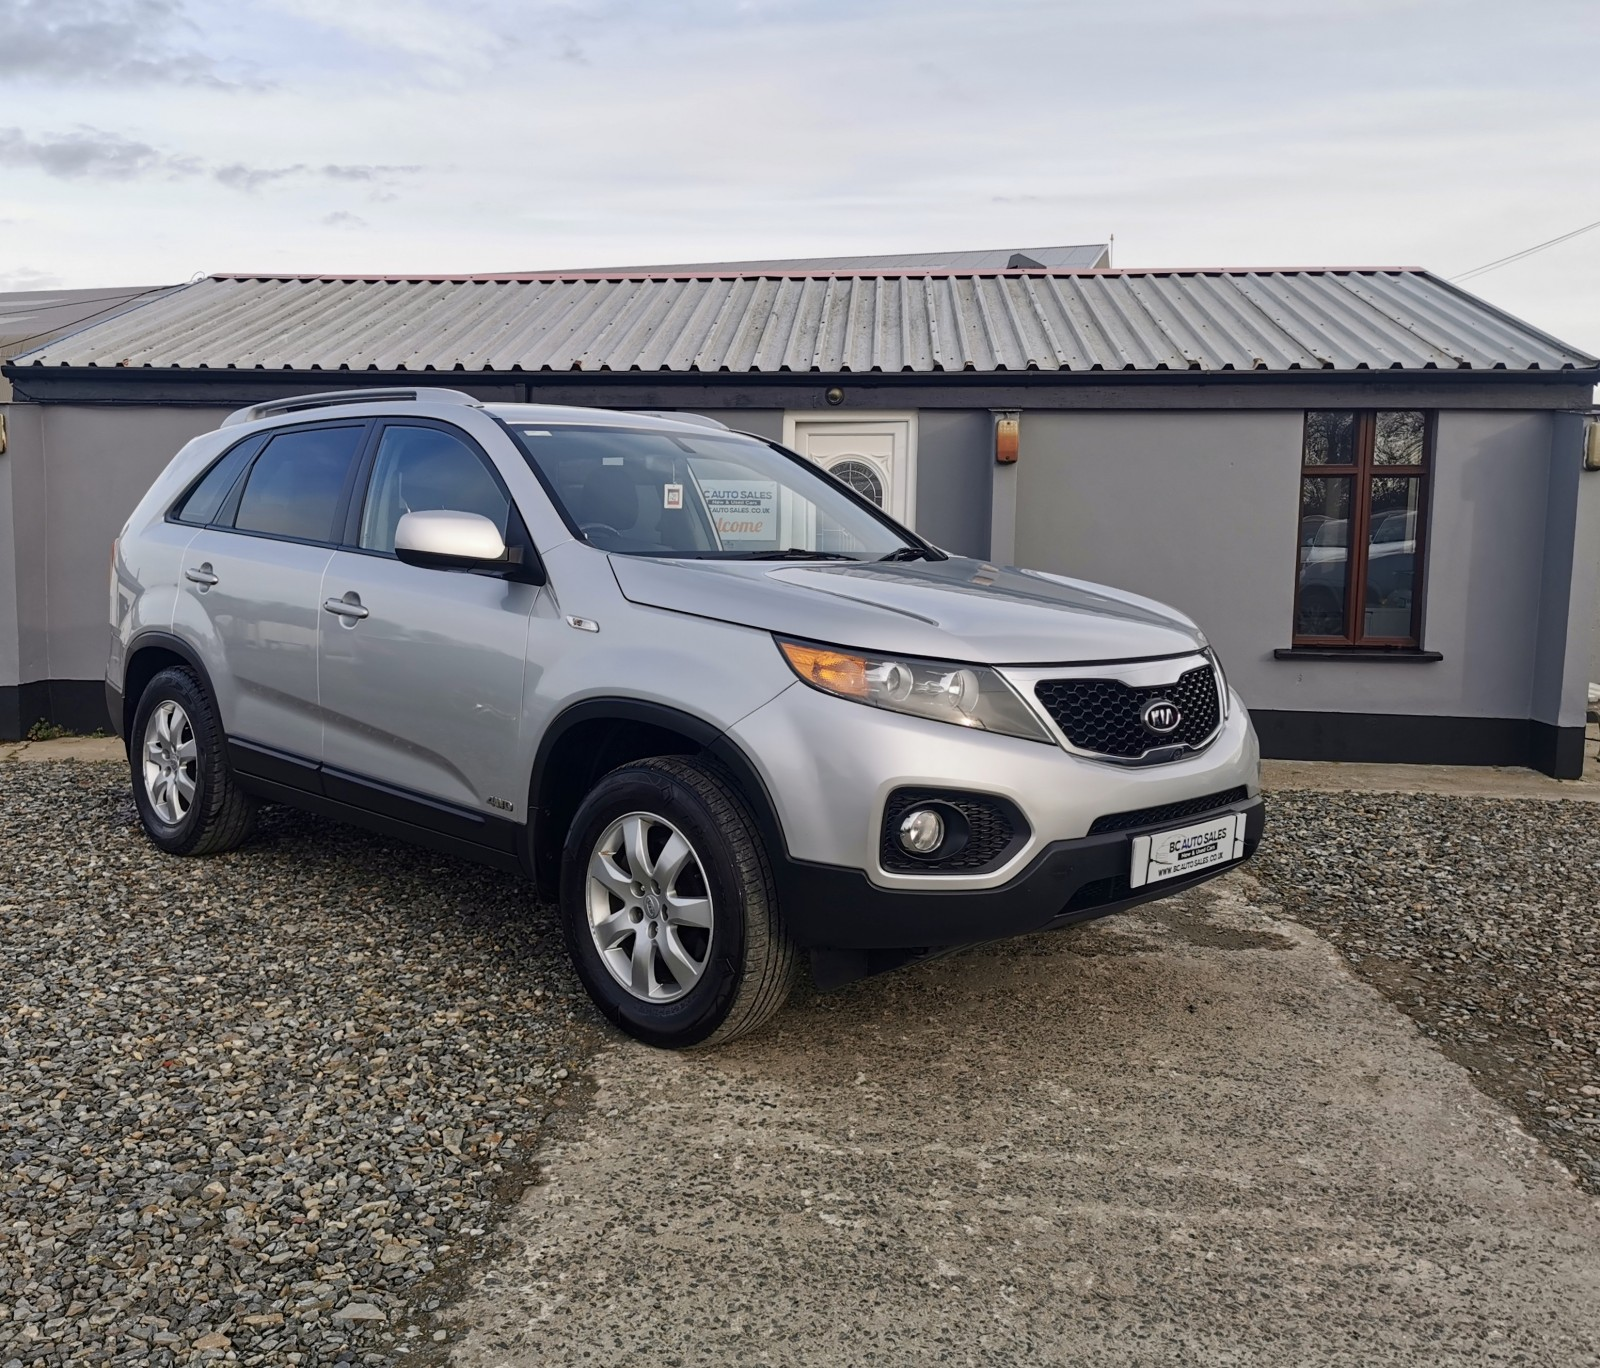 2010 Kia Sorento CRDI KX-1 Diesel Manual – BC Autosales 17A Airfield Road, Eglinton, Londonderry BT47 3PZ, UK